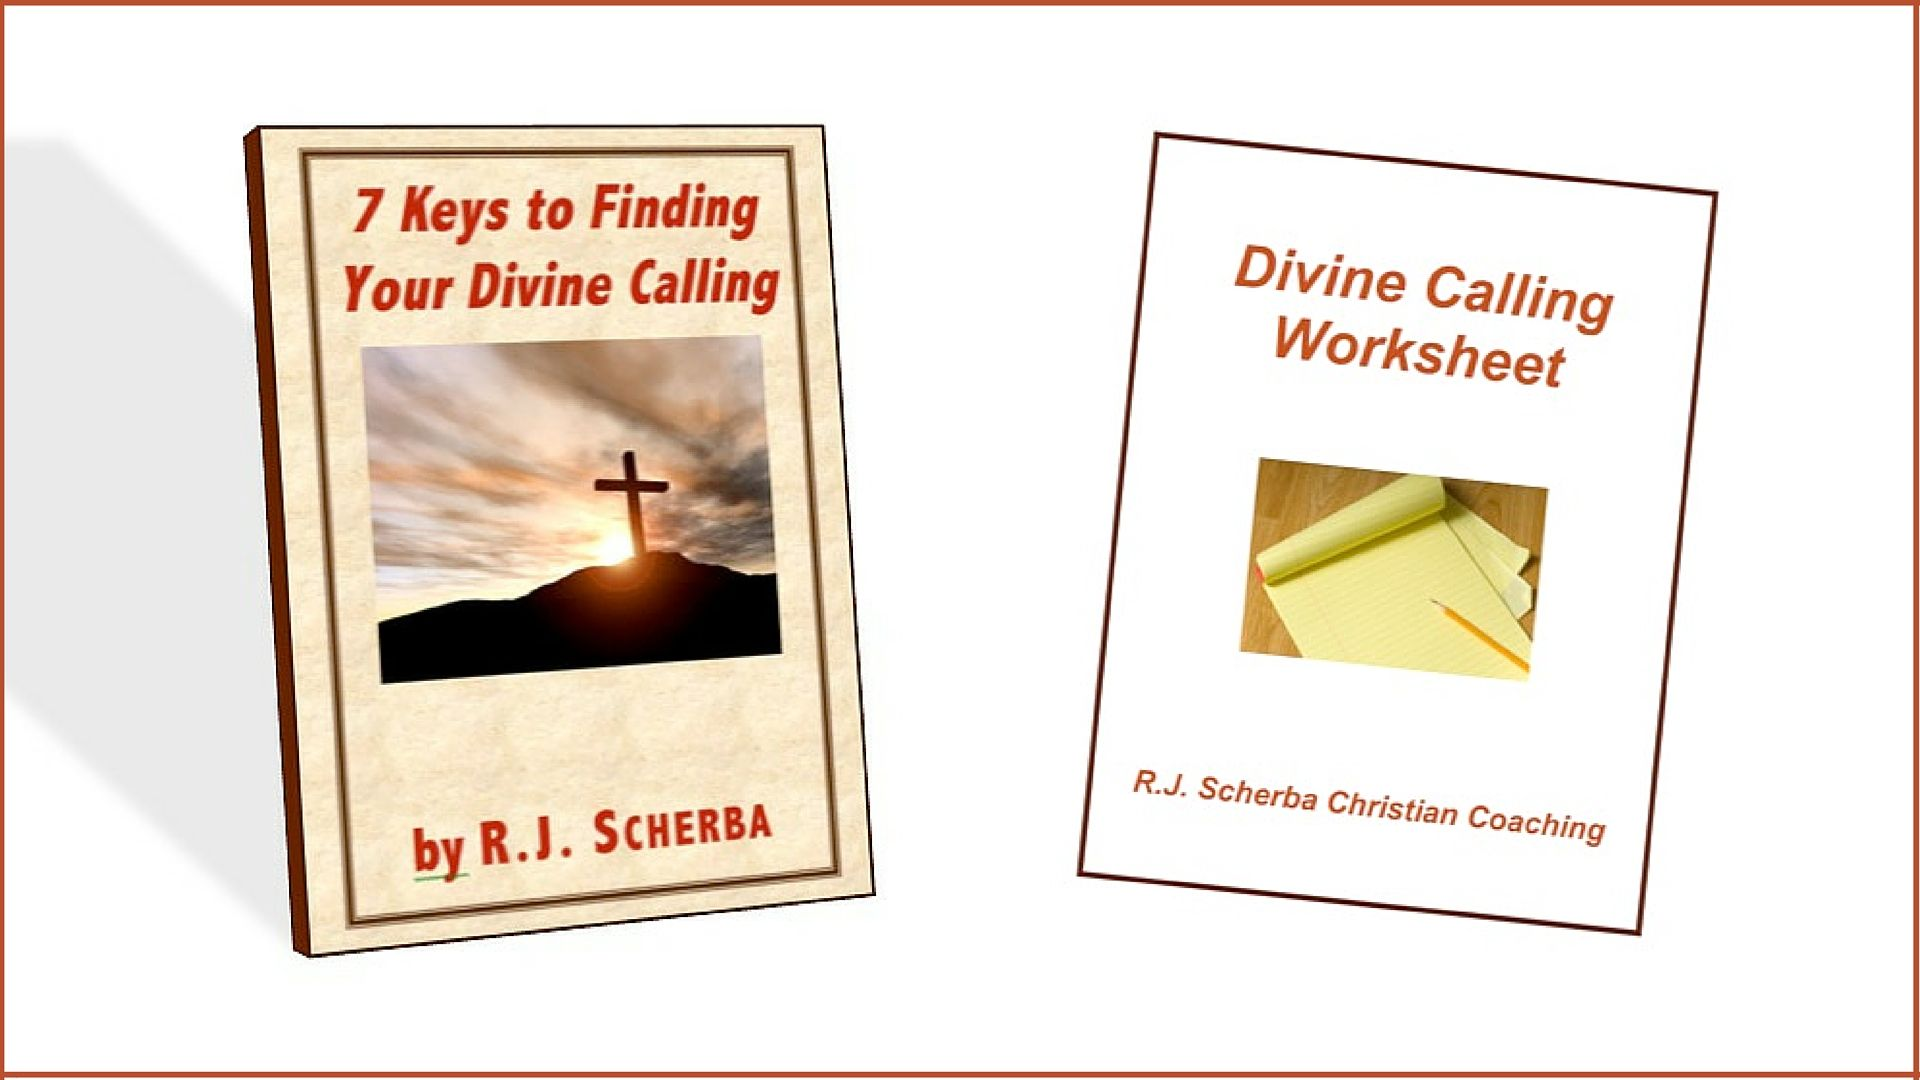 7 Keys To Finding Your Divine Calling